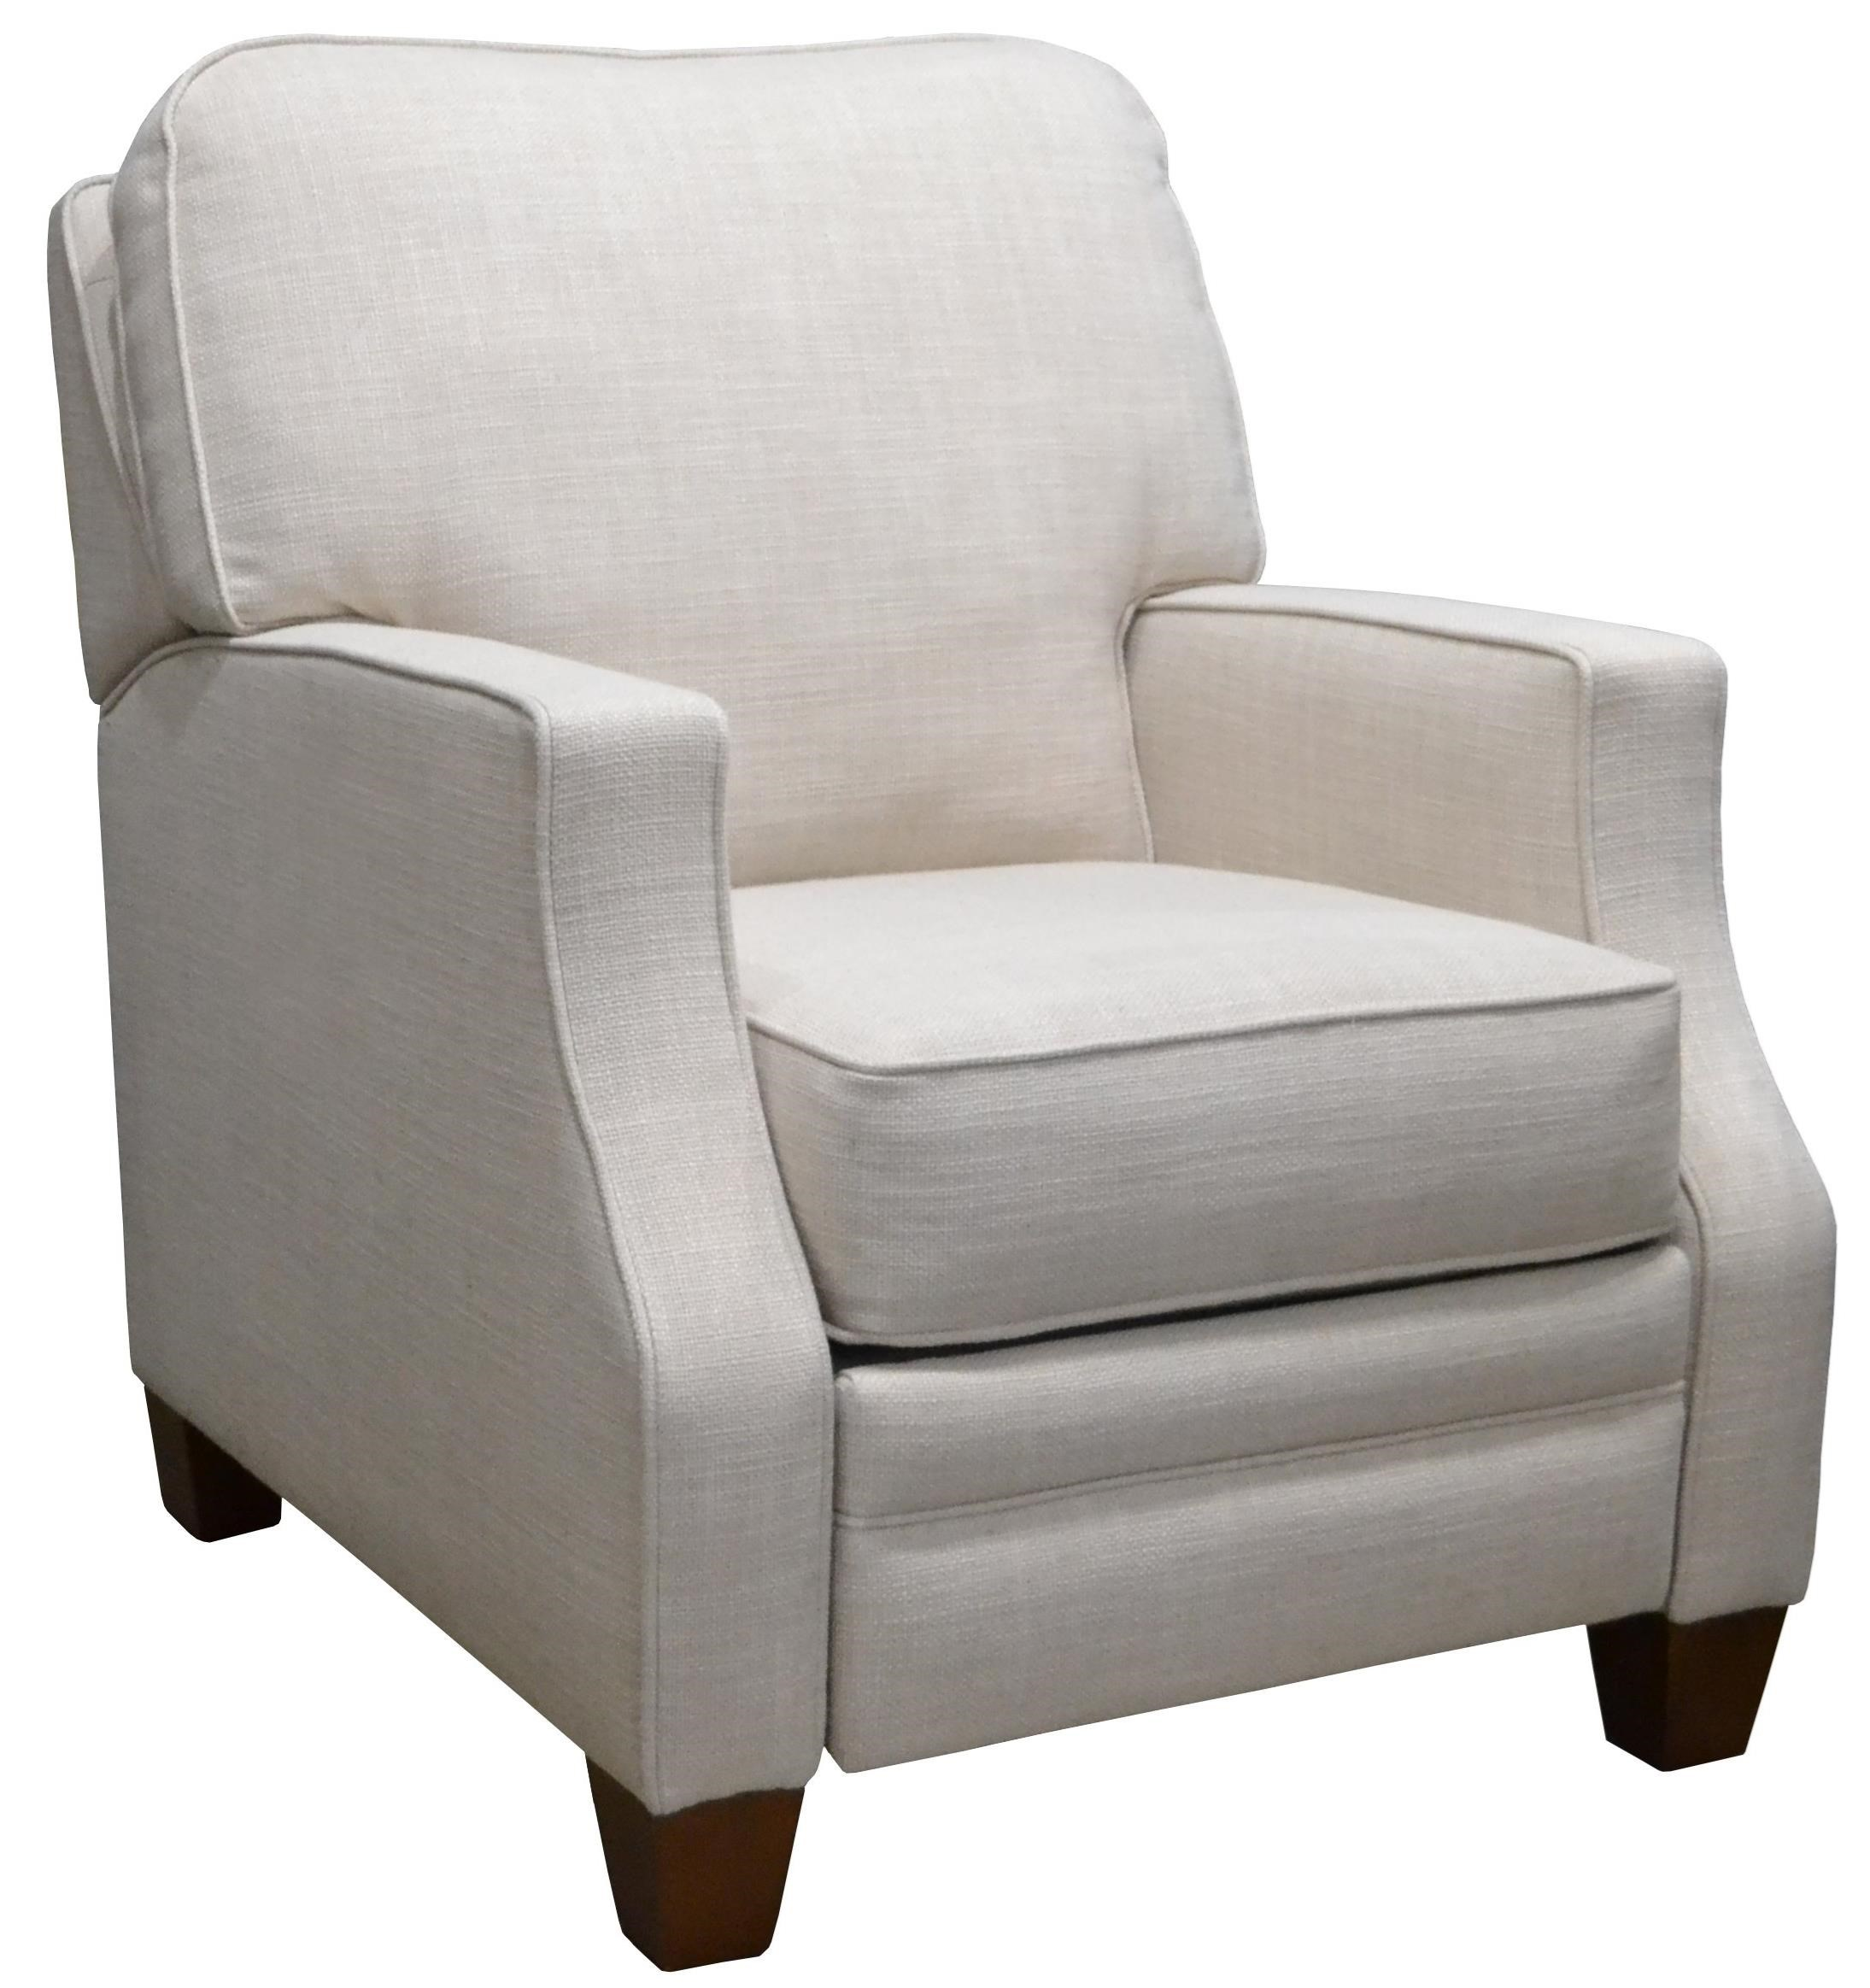 358 Push Back Recliner by Stanton at Wilson's Furniture